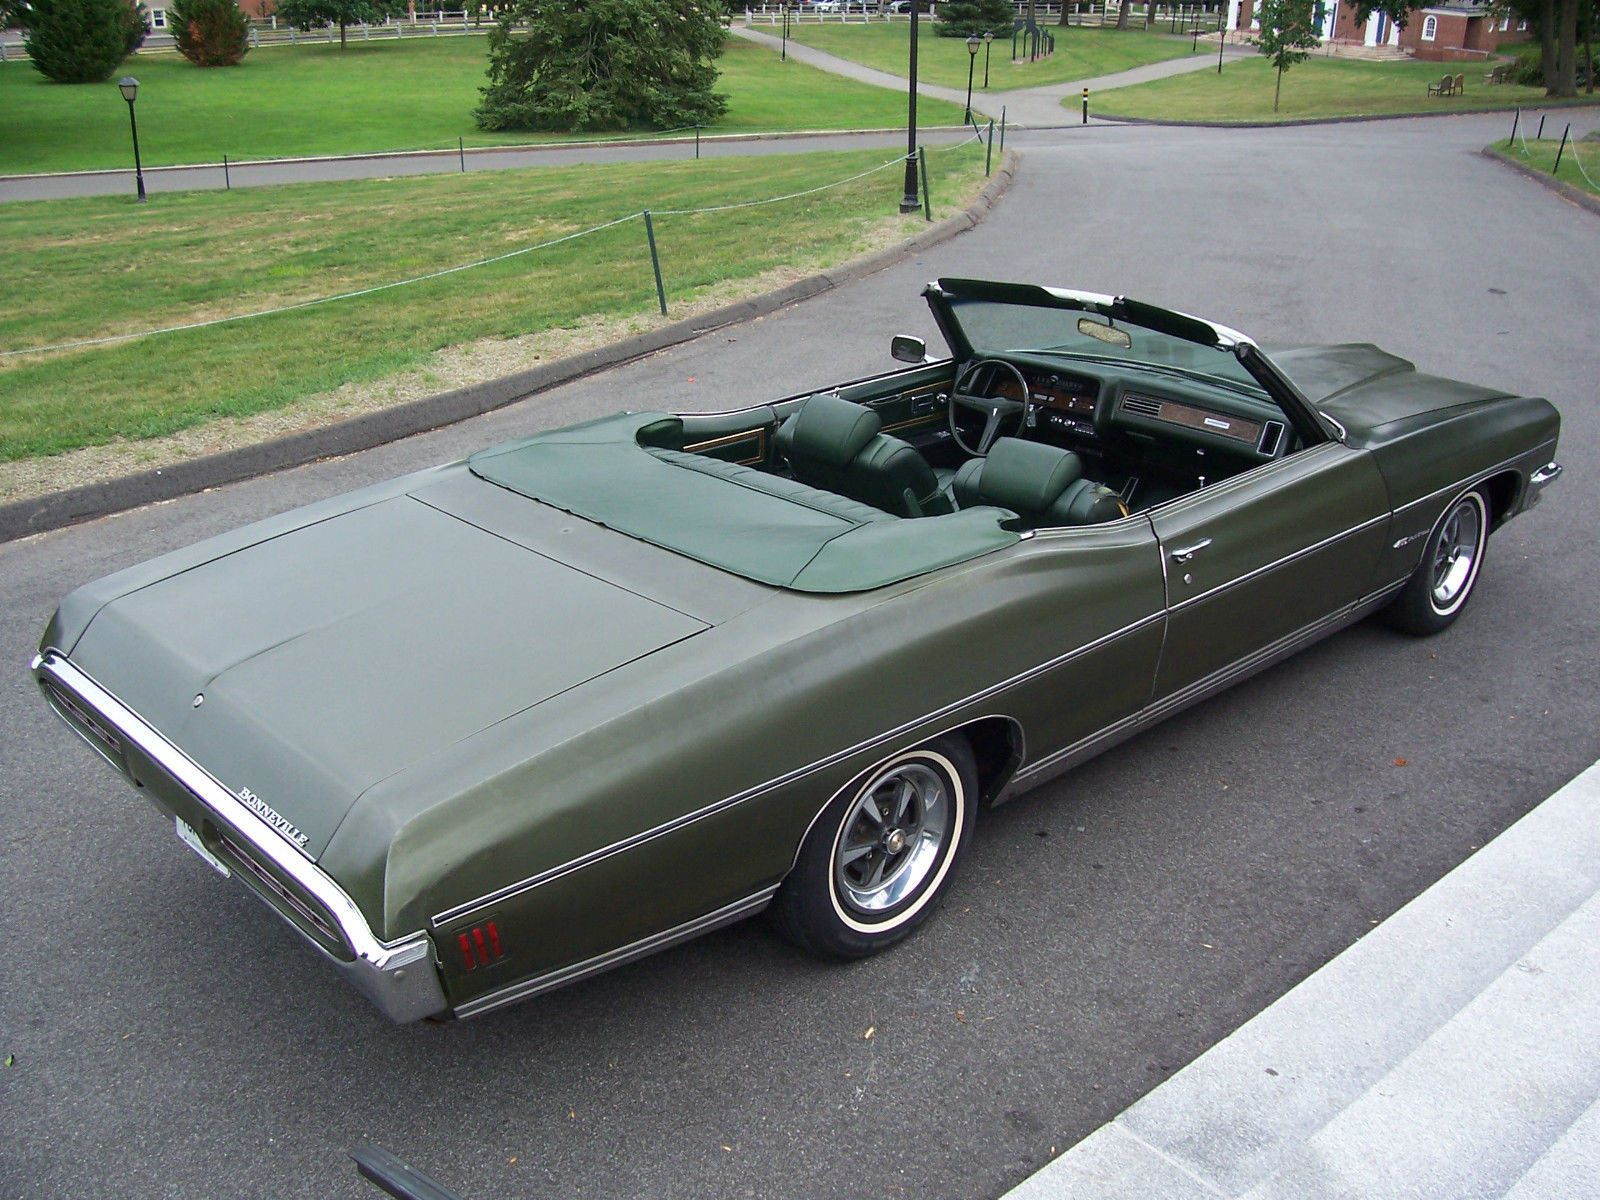 1970 pontiac bonneville convertible maintenance restoration of old vintage vehicles the material for